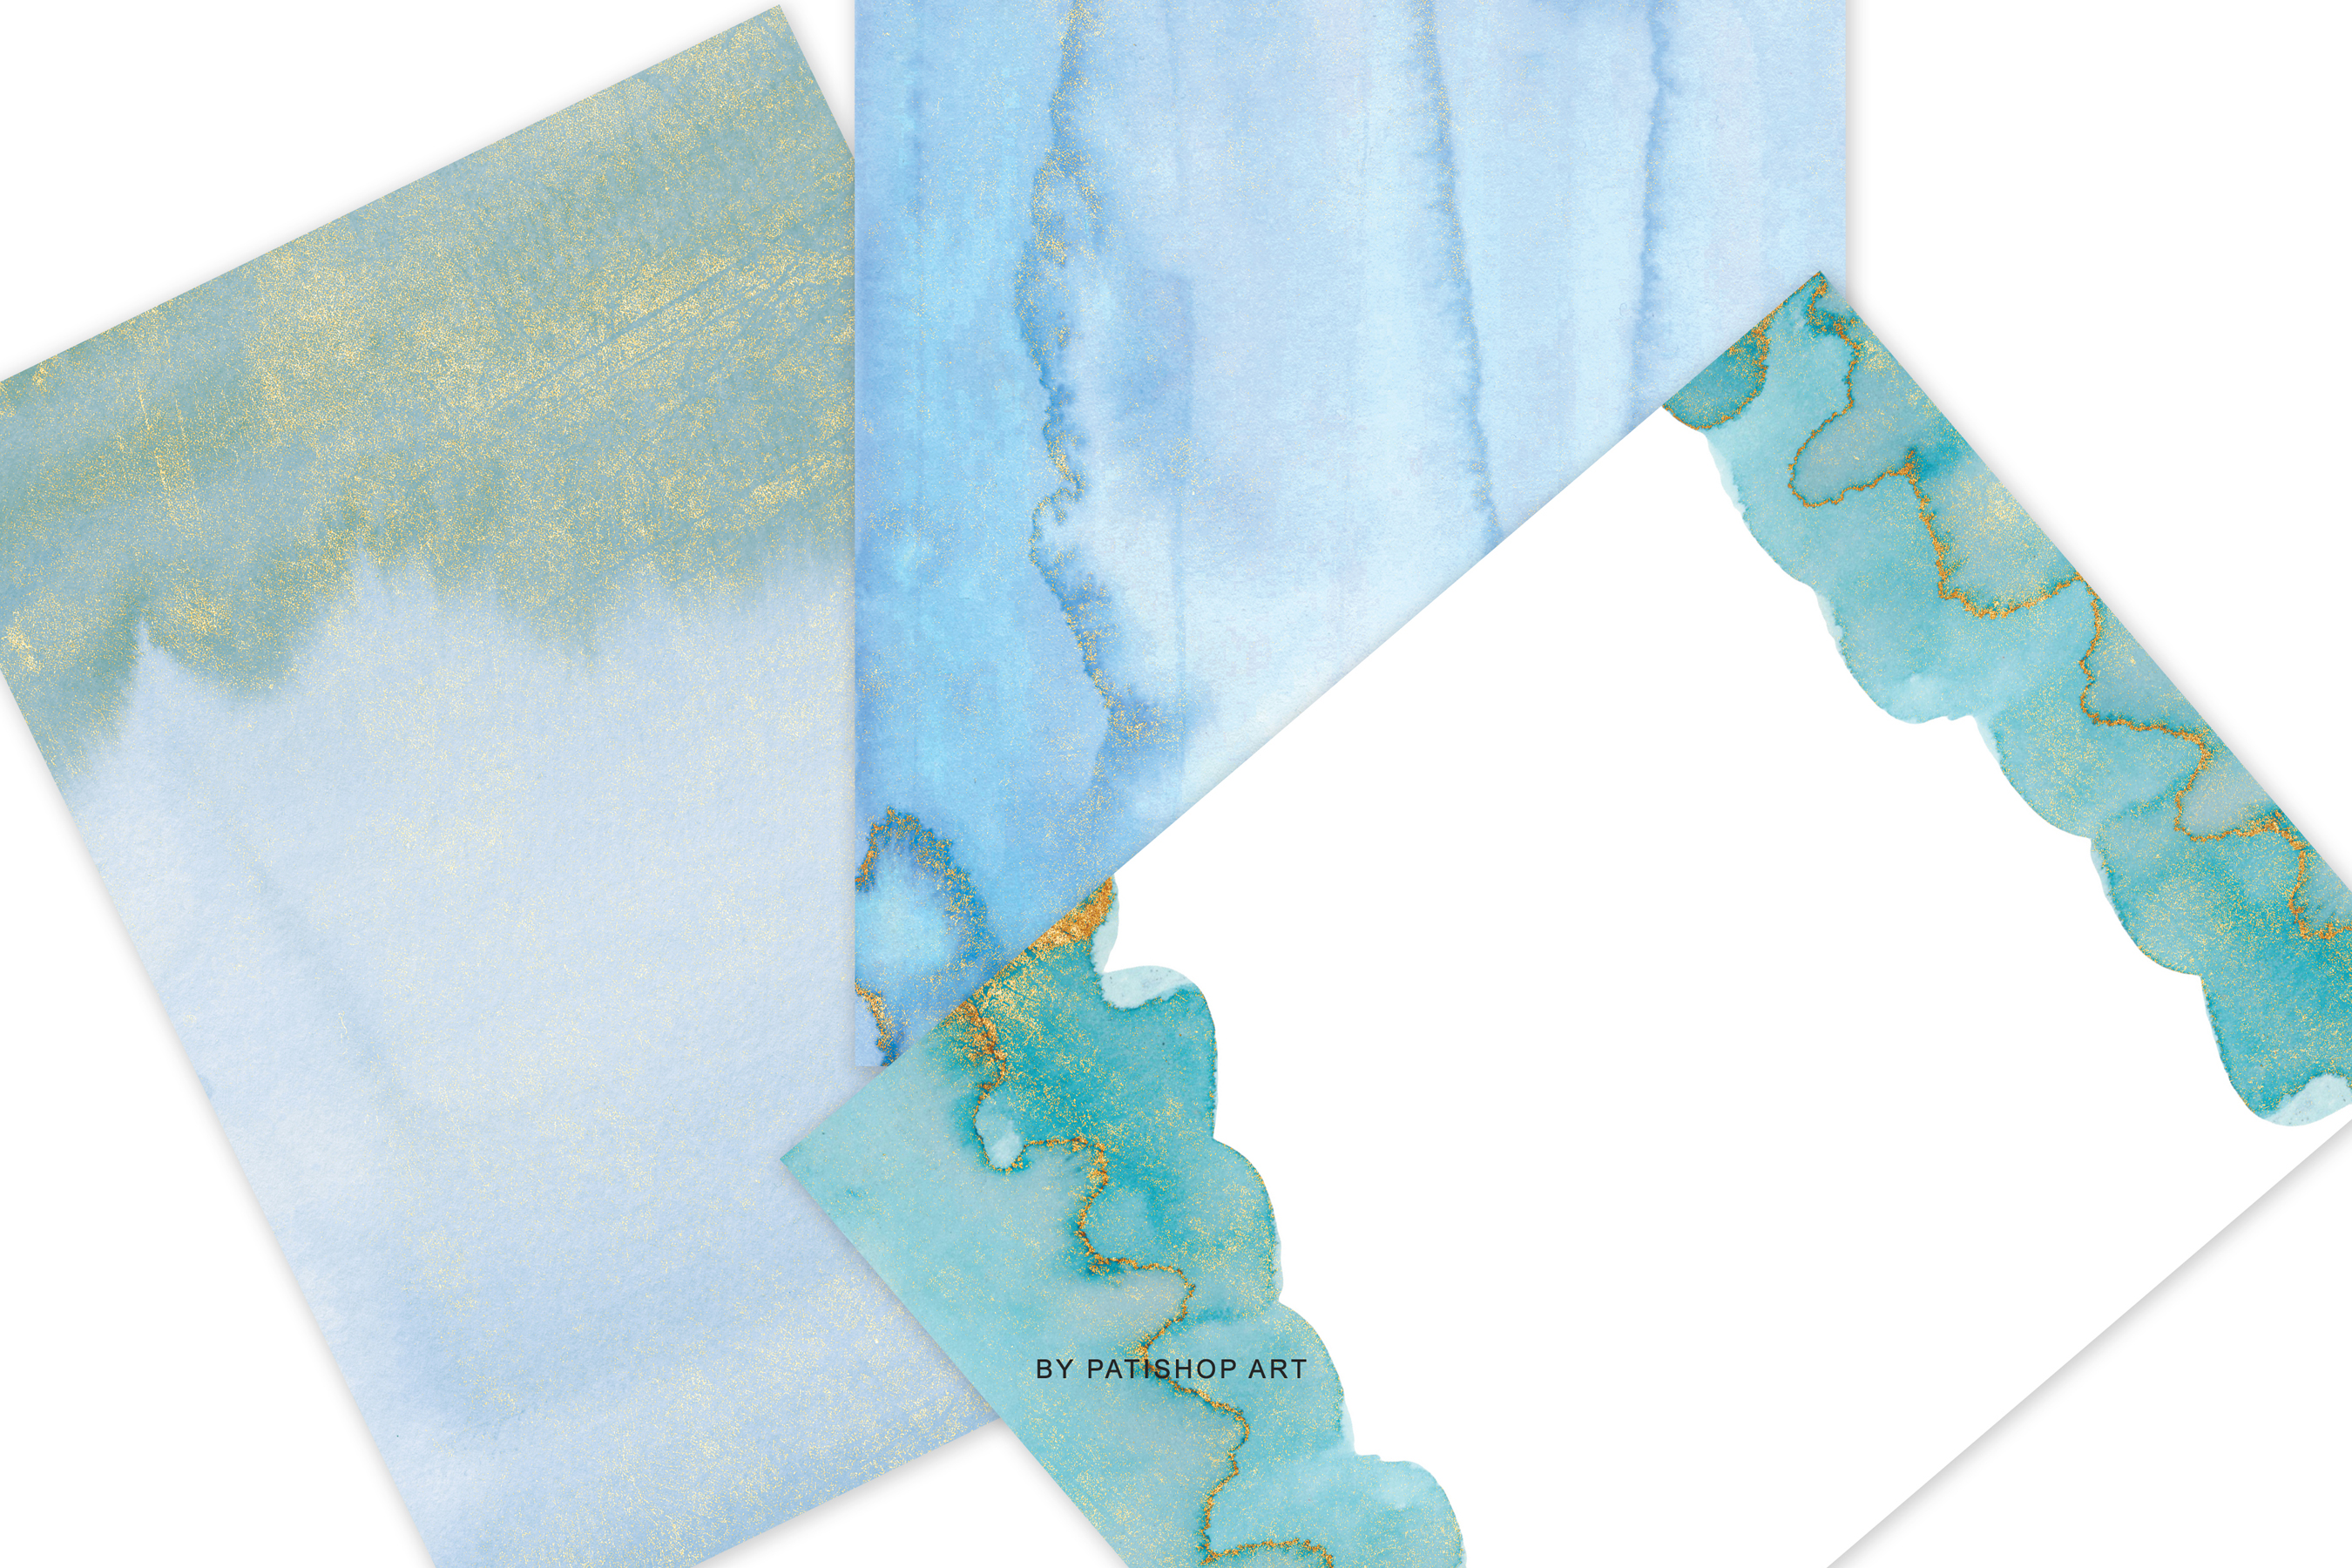 Watercolor Glittered Green & Turquoise Background 5x7 example image 10